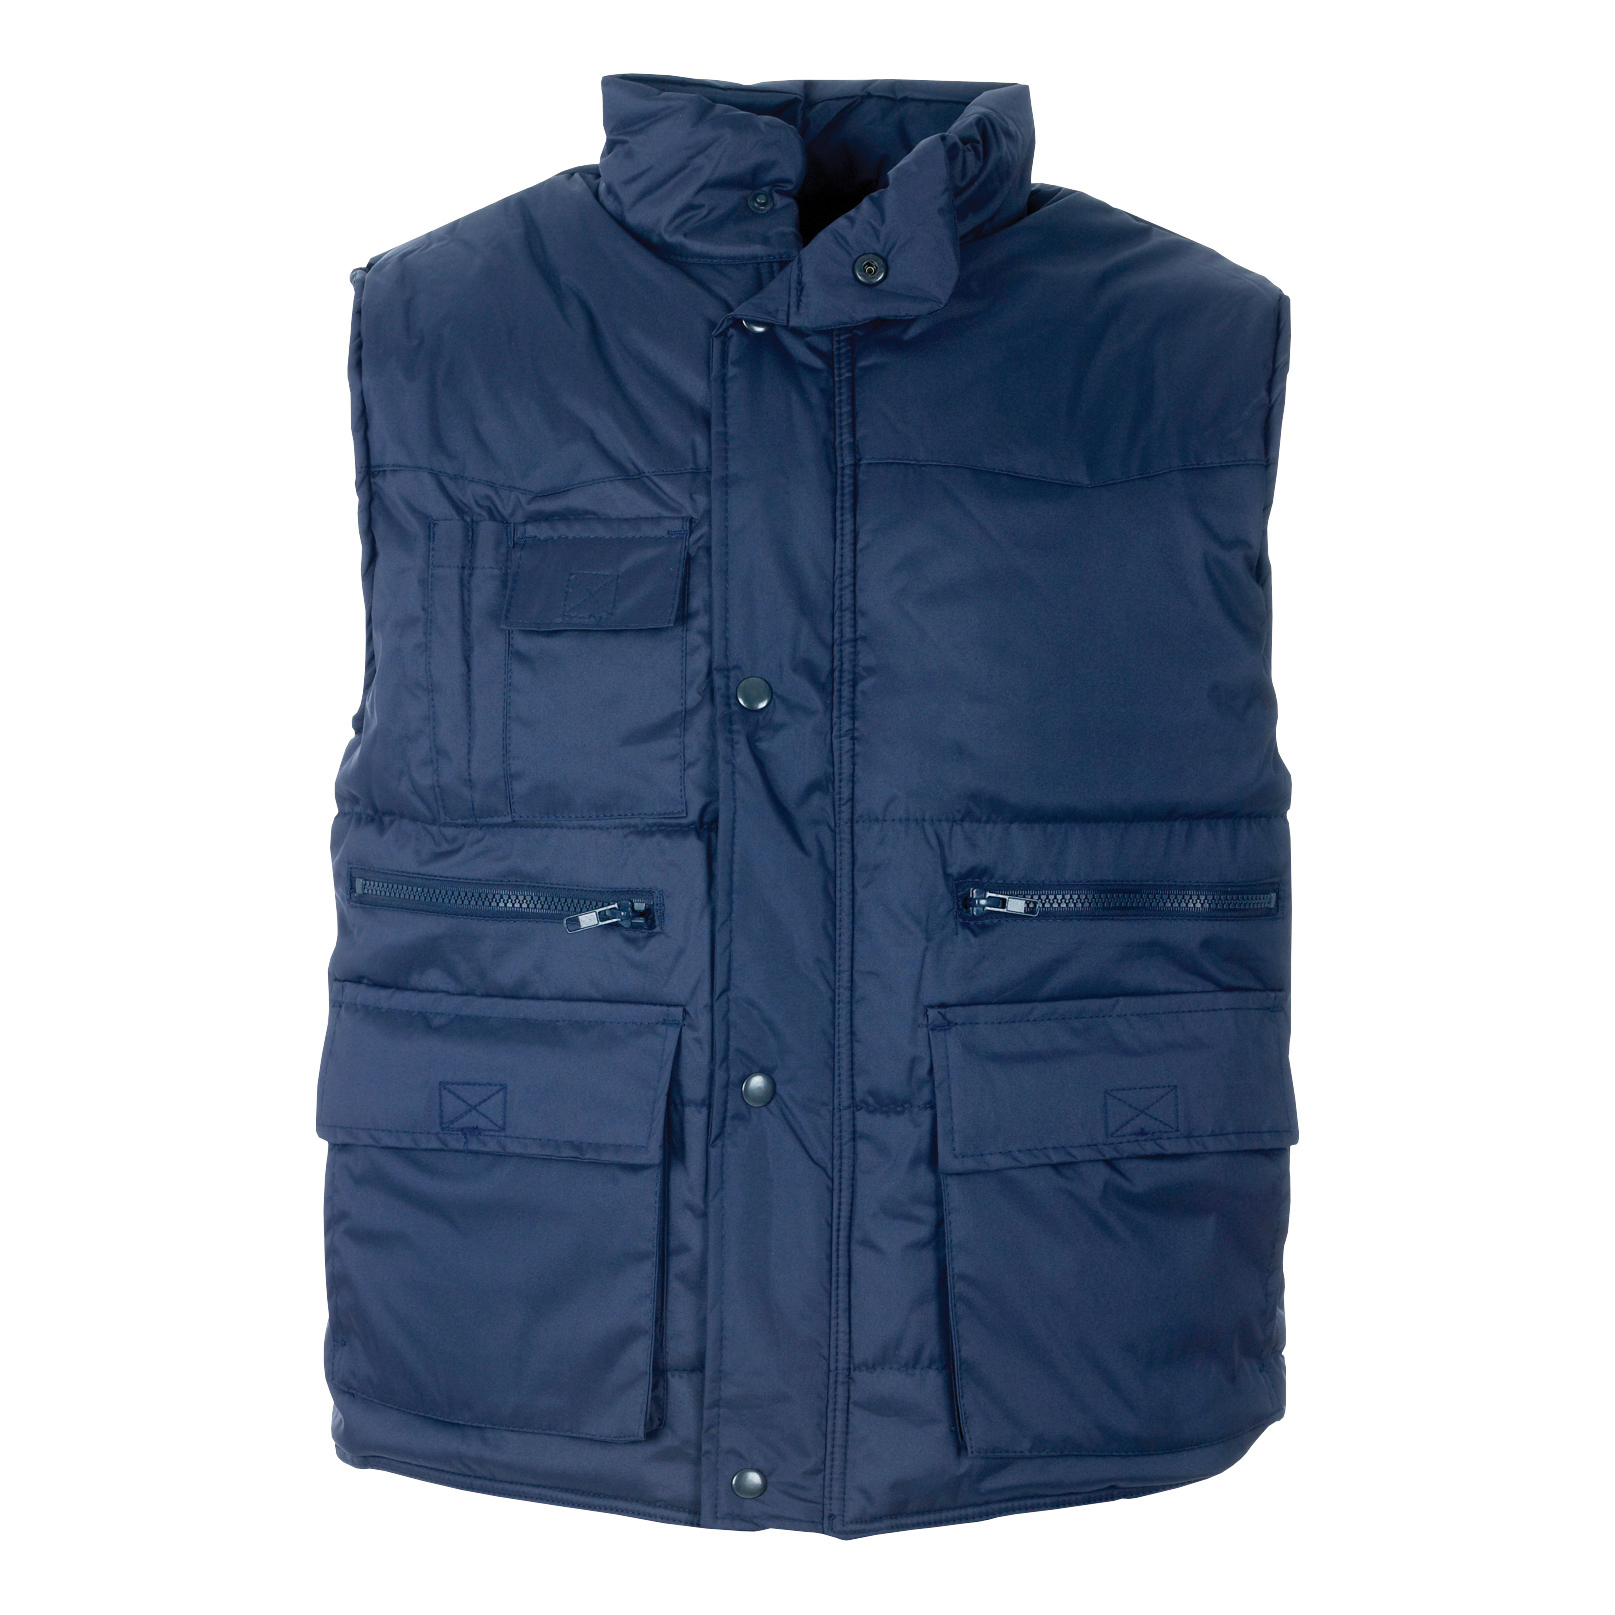 Body Warmer Polyester with Padding & Multi Pockets Medium Navy Ref HBNM Approx 3 Day Leadtime